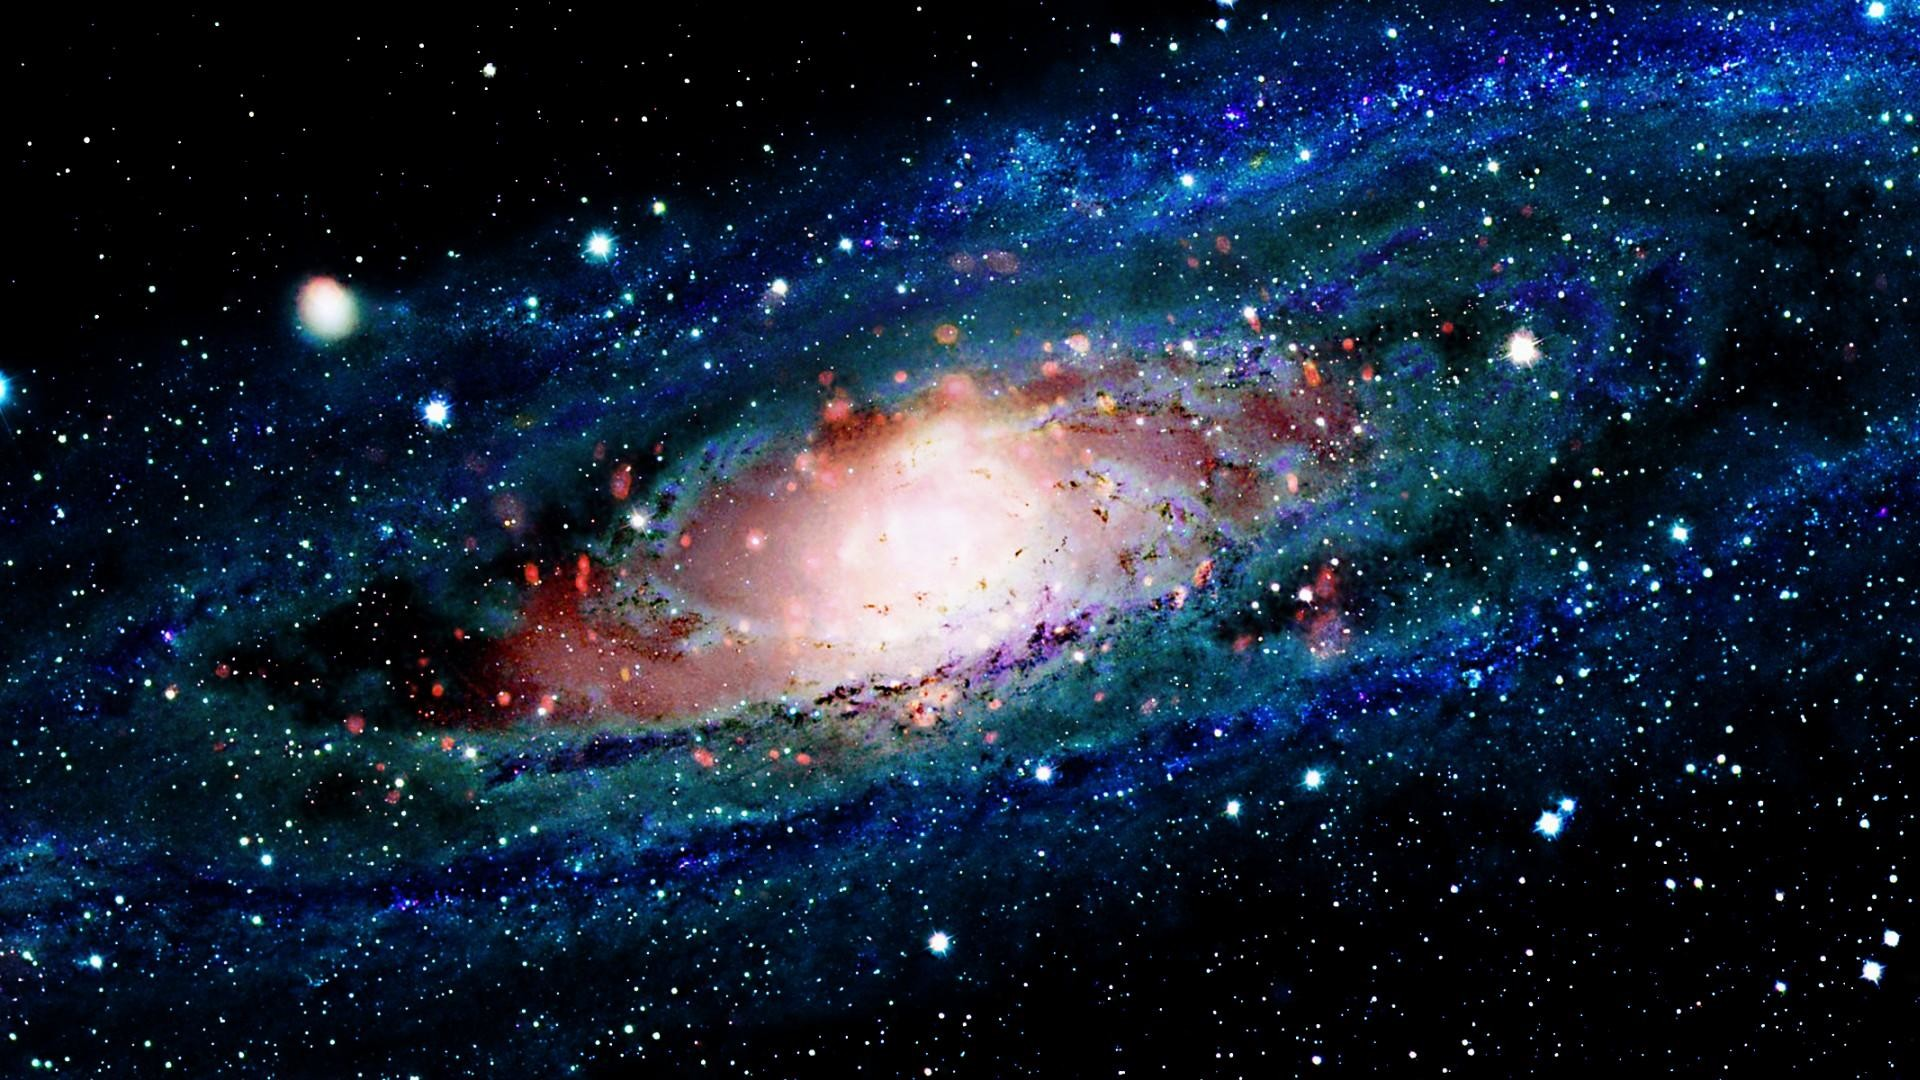 Galaxy Wallpapers High Resolution: High Resolution Space Wallpapers (55+ Images